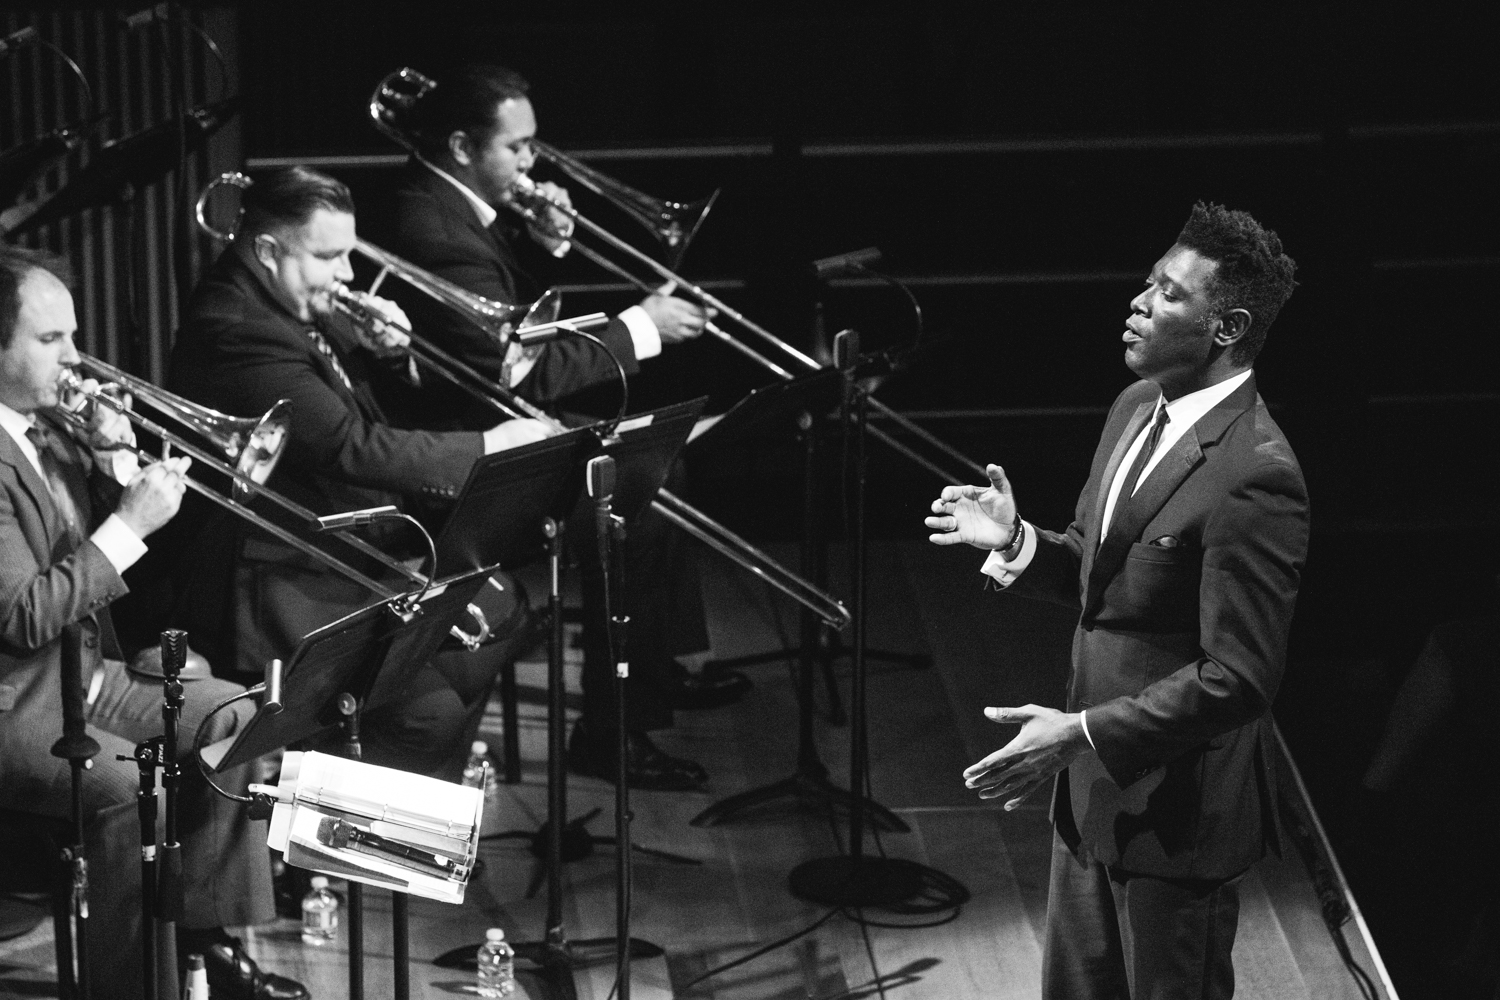 marcus-shelby-orchestra-sfjazz-live-music-show.jpg